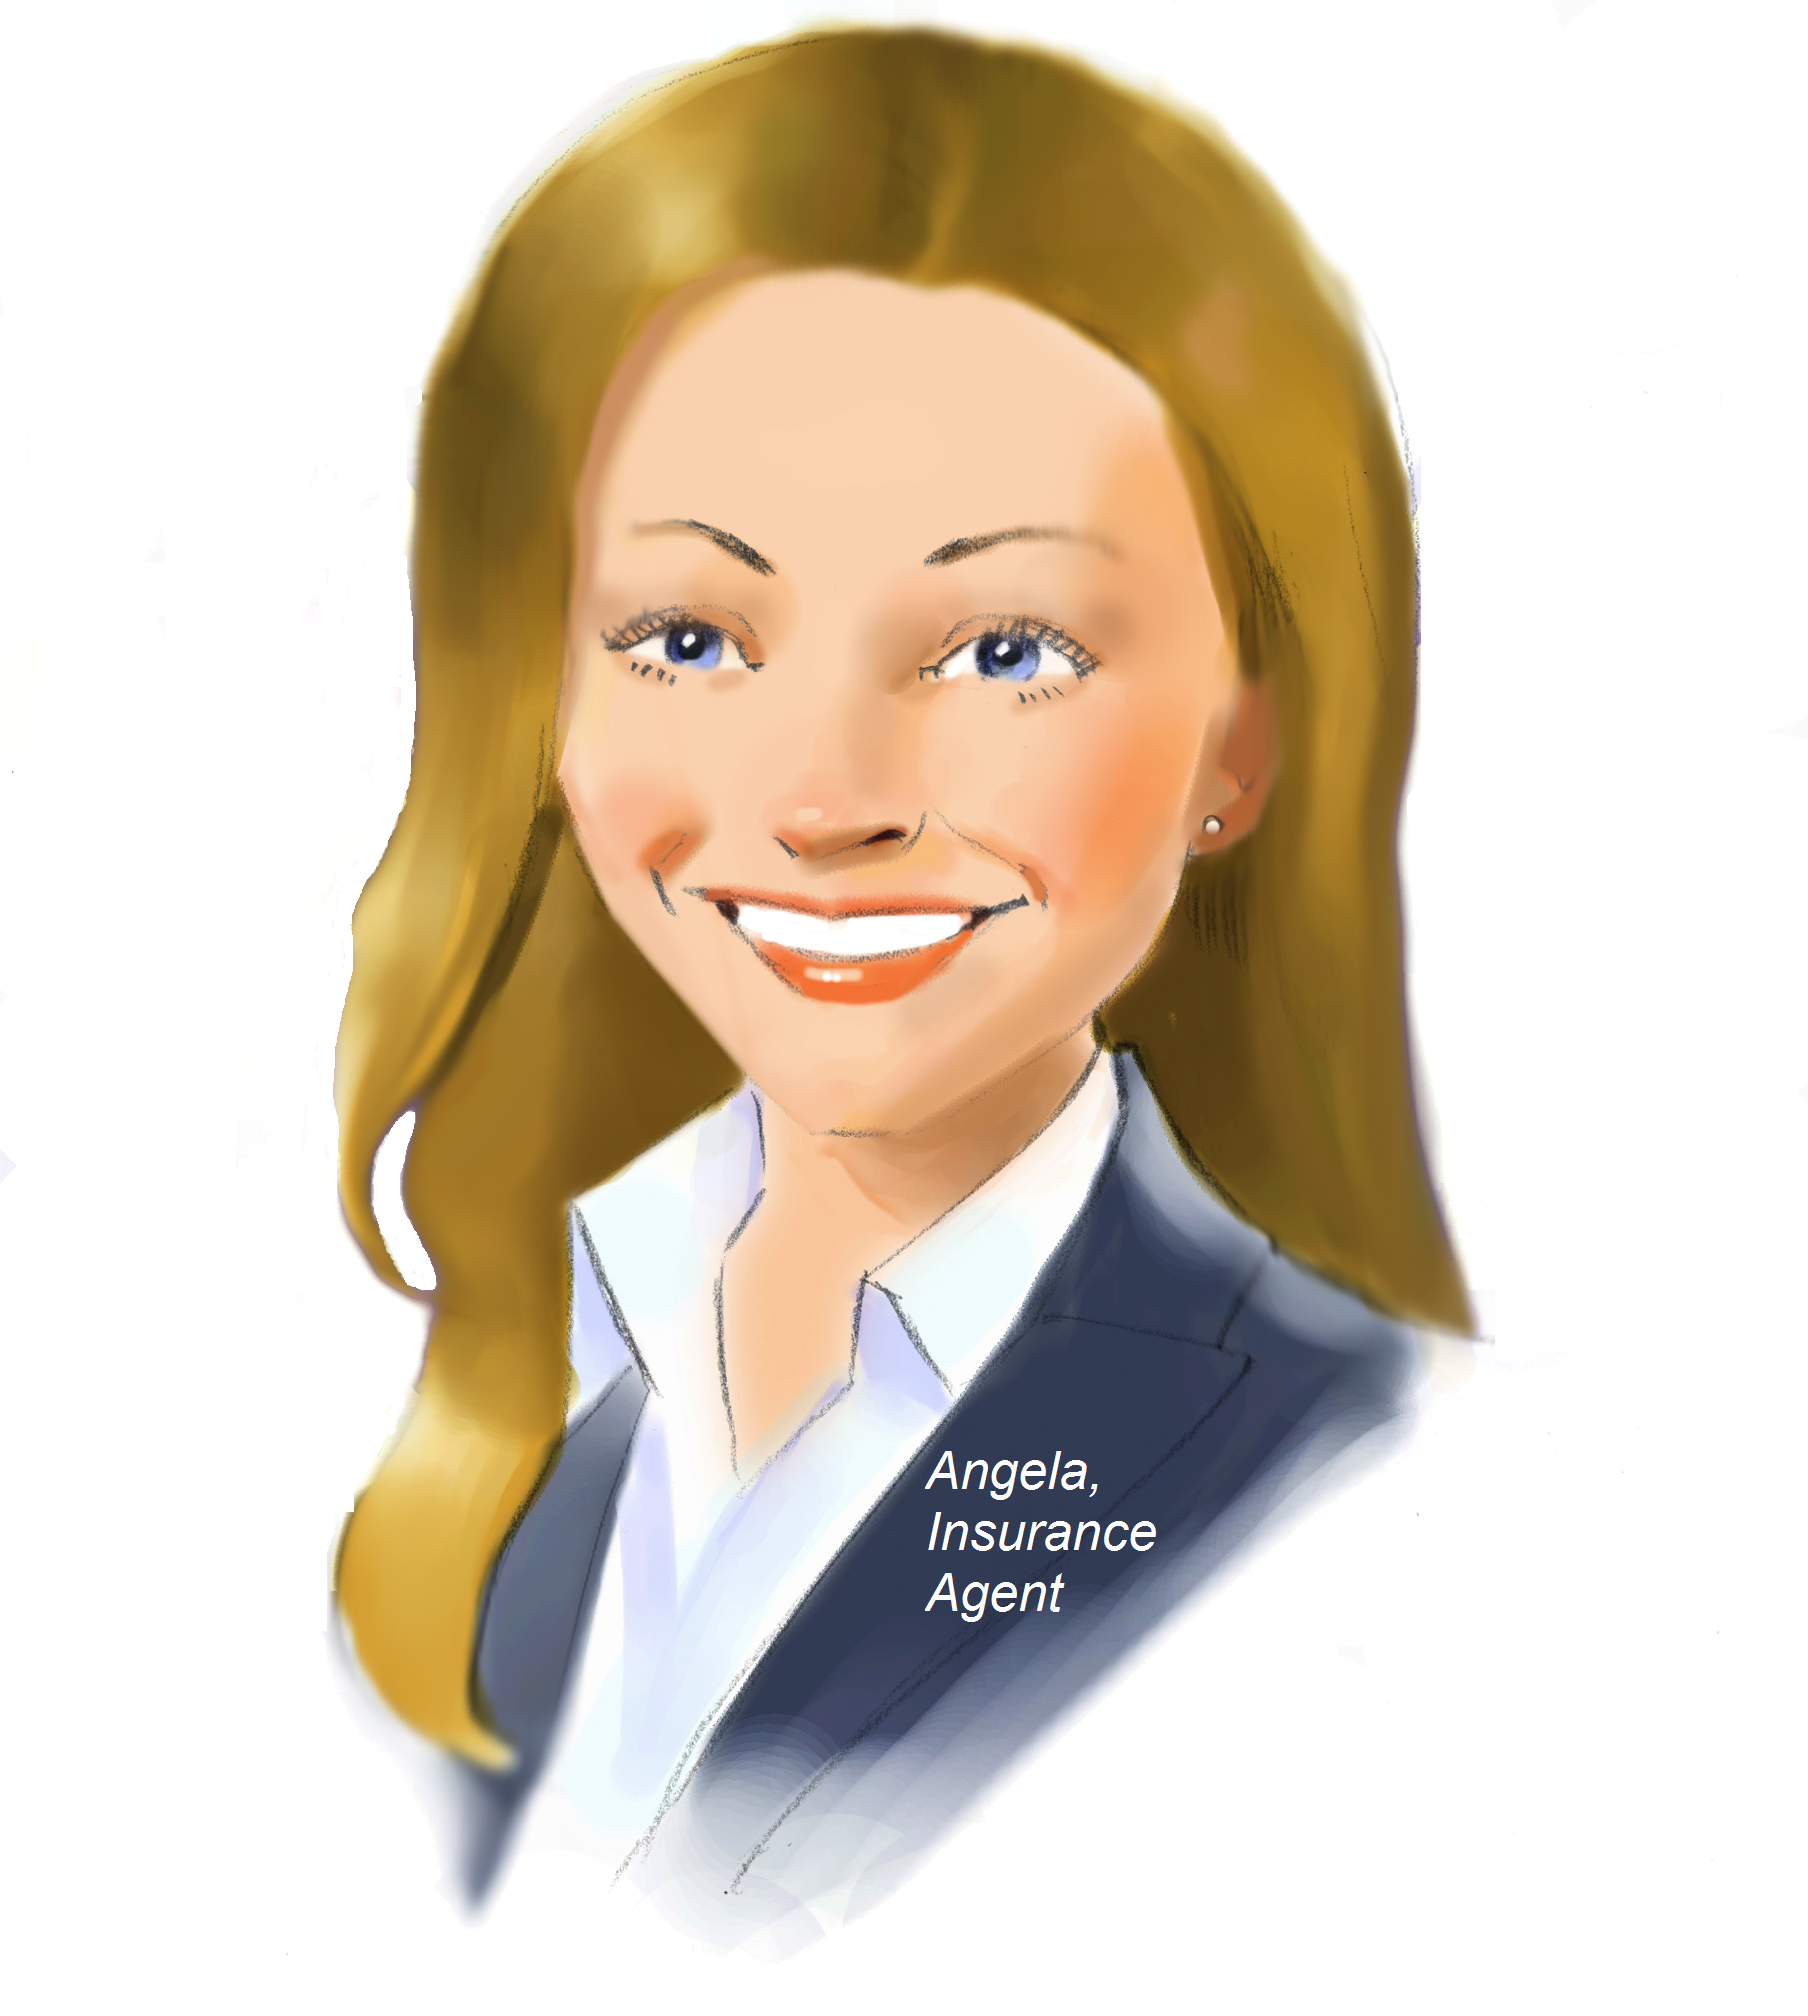 Angela, Insurance Agent signature, no background.png